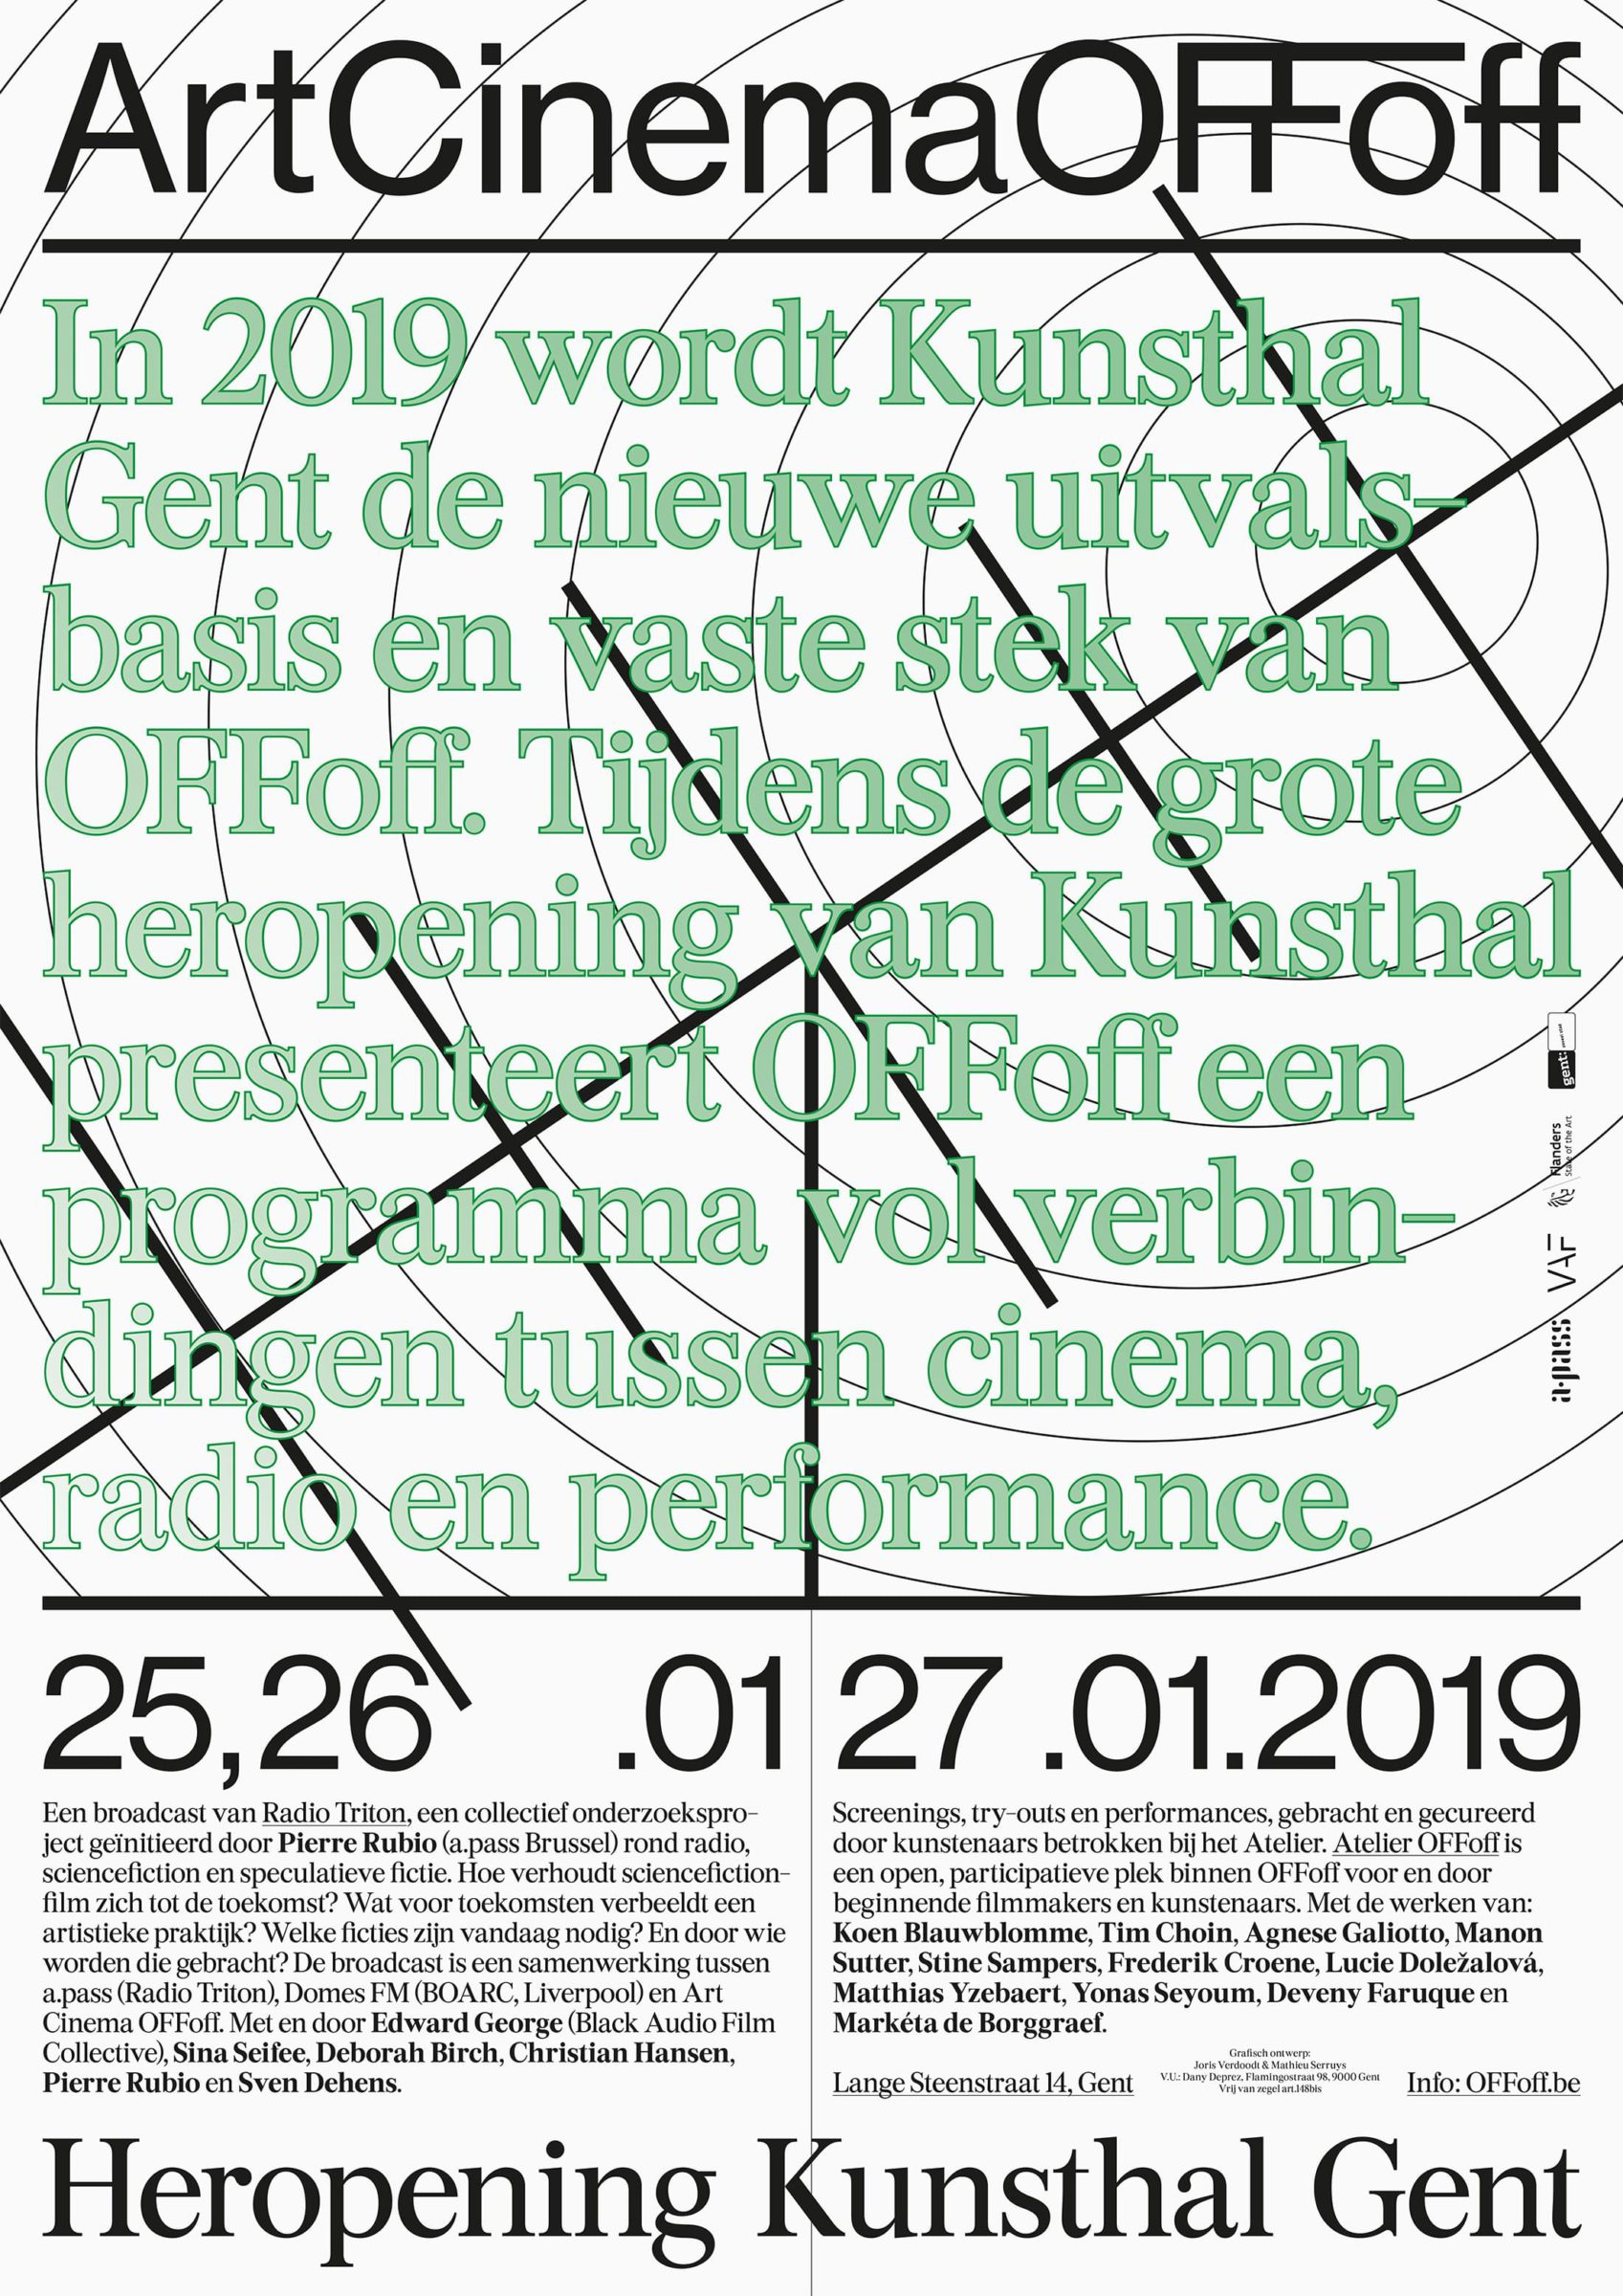 Heropening Kunsthal Gent, Art Cinema OFFoff, A2 poster